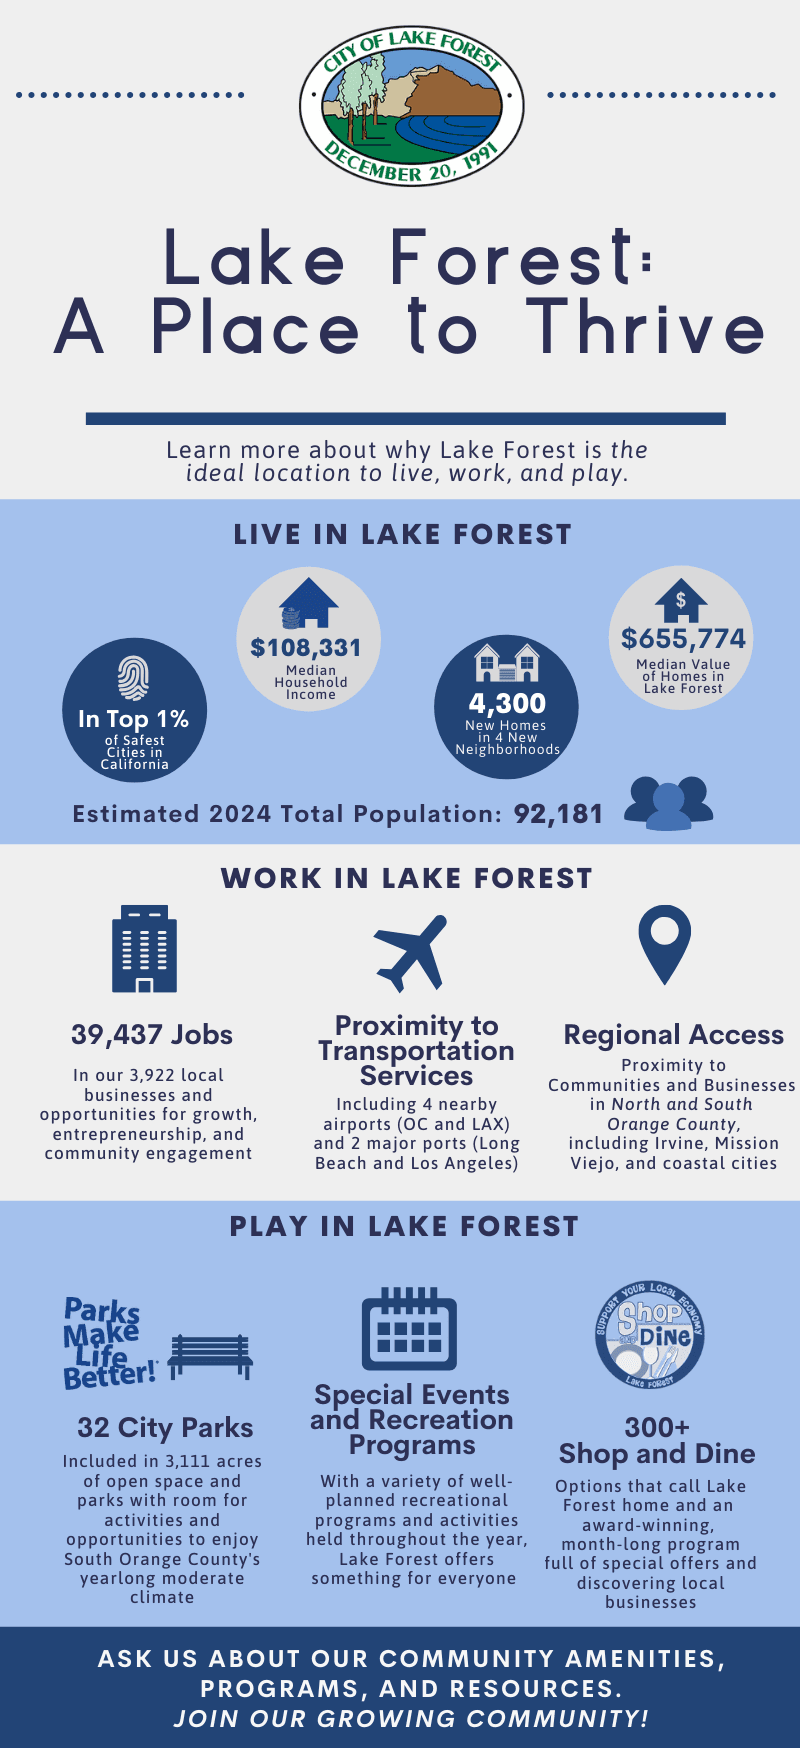 Lake Forest_ A Place to Thrive [2019]